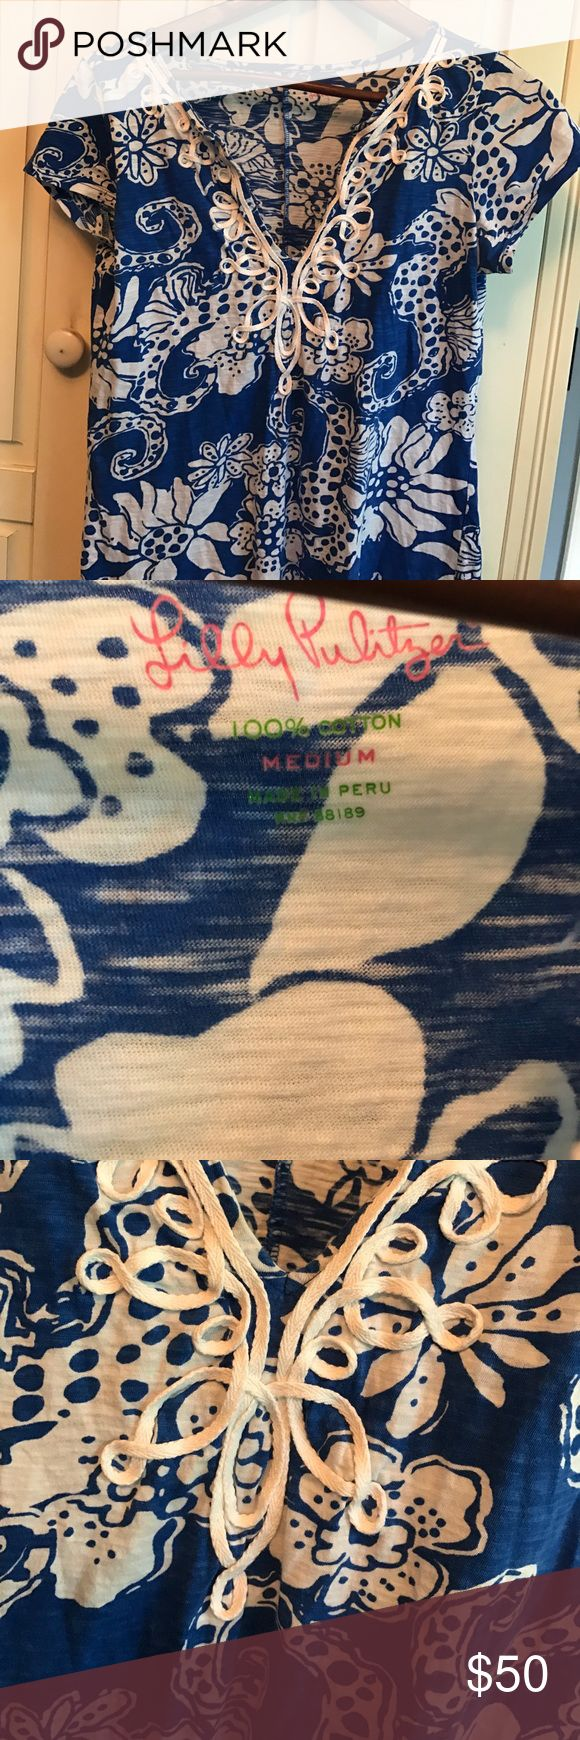 Blue and white Lilly Pulitzer Dress! Neck detail!  Classic cotton dress or cover up! Love Lilly! Lilly Pulitzer Dresses